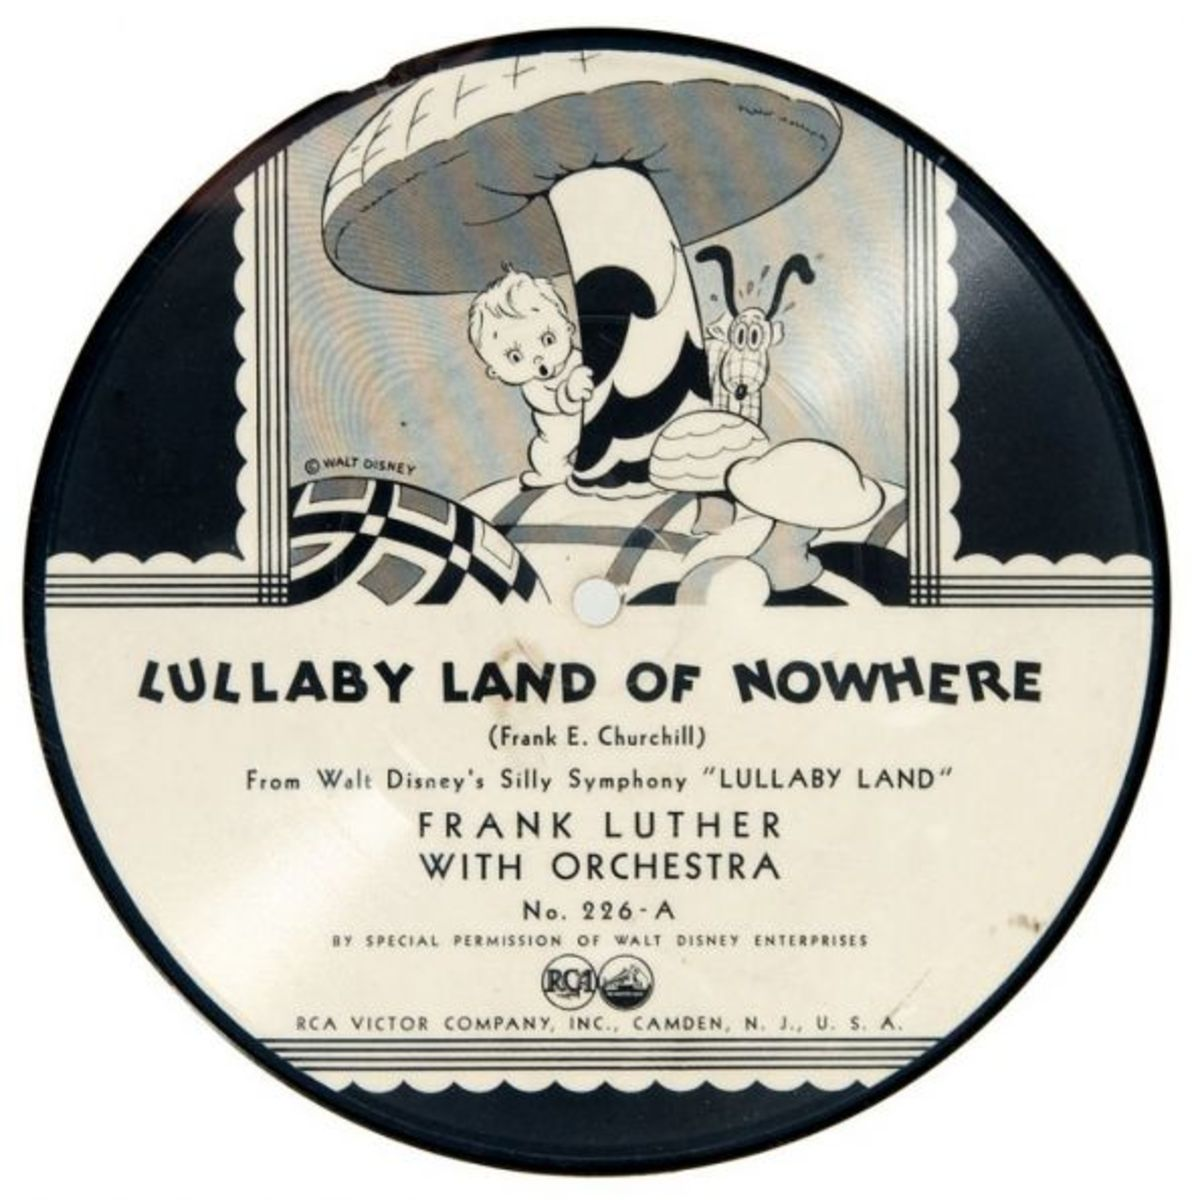 "Frank Luther and His Orchestra Silly Symphony Lullaby Land ""Lullaby Land of Nowhere"" RCA Victor 226-A  7"" 78 rpm Shellac Record 1934"